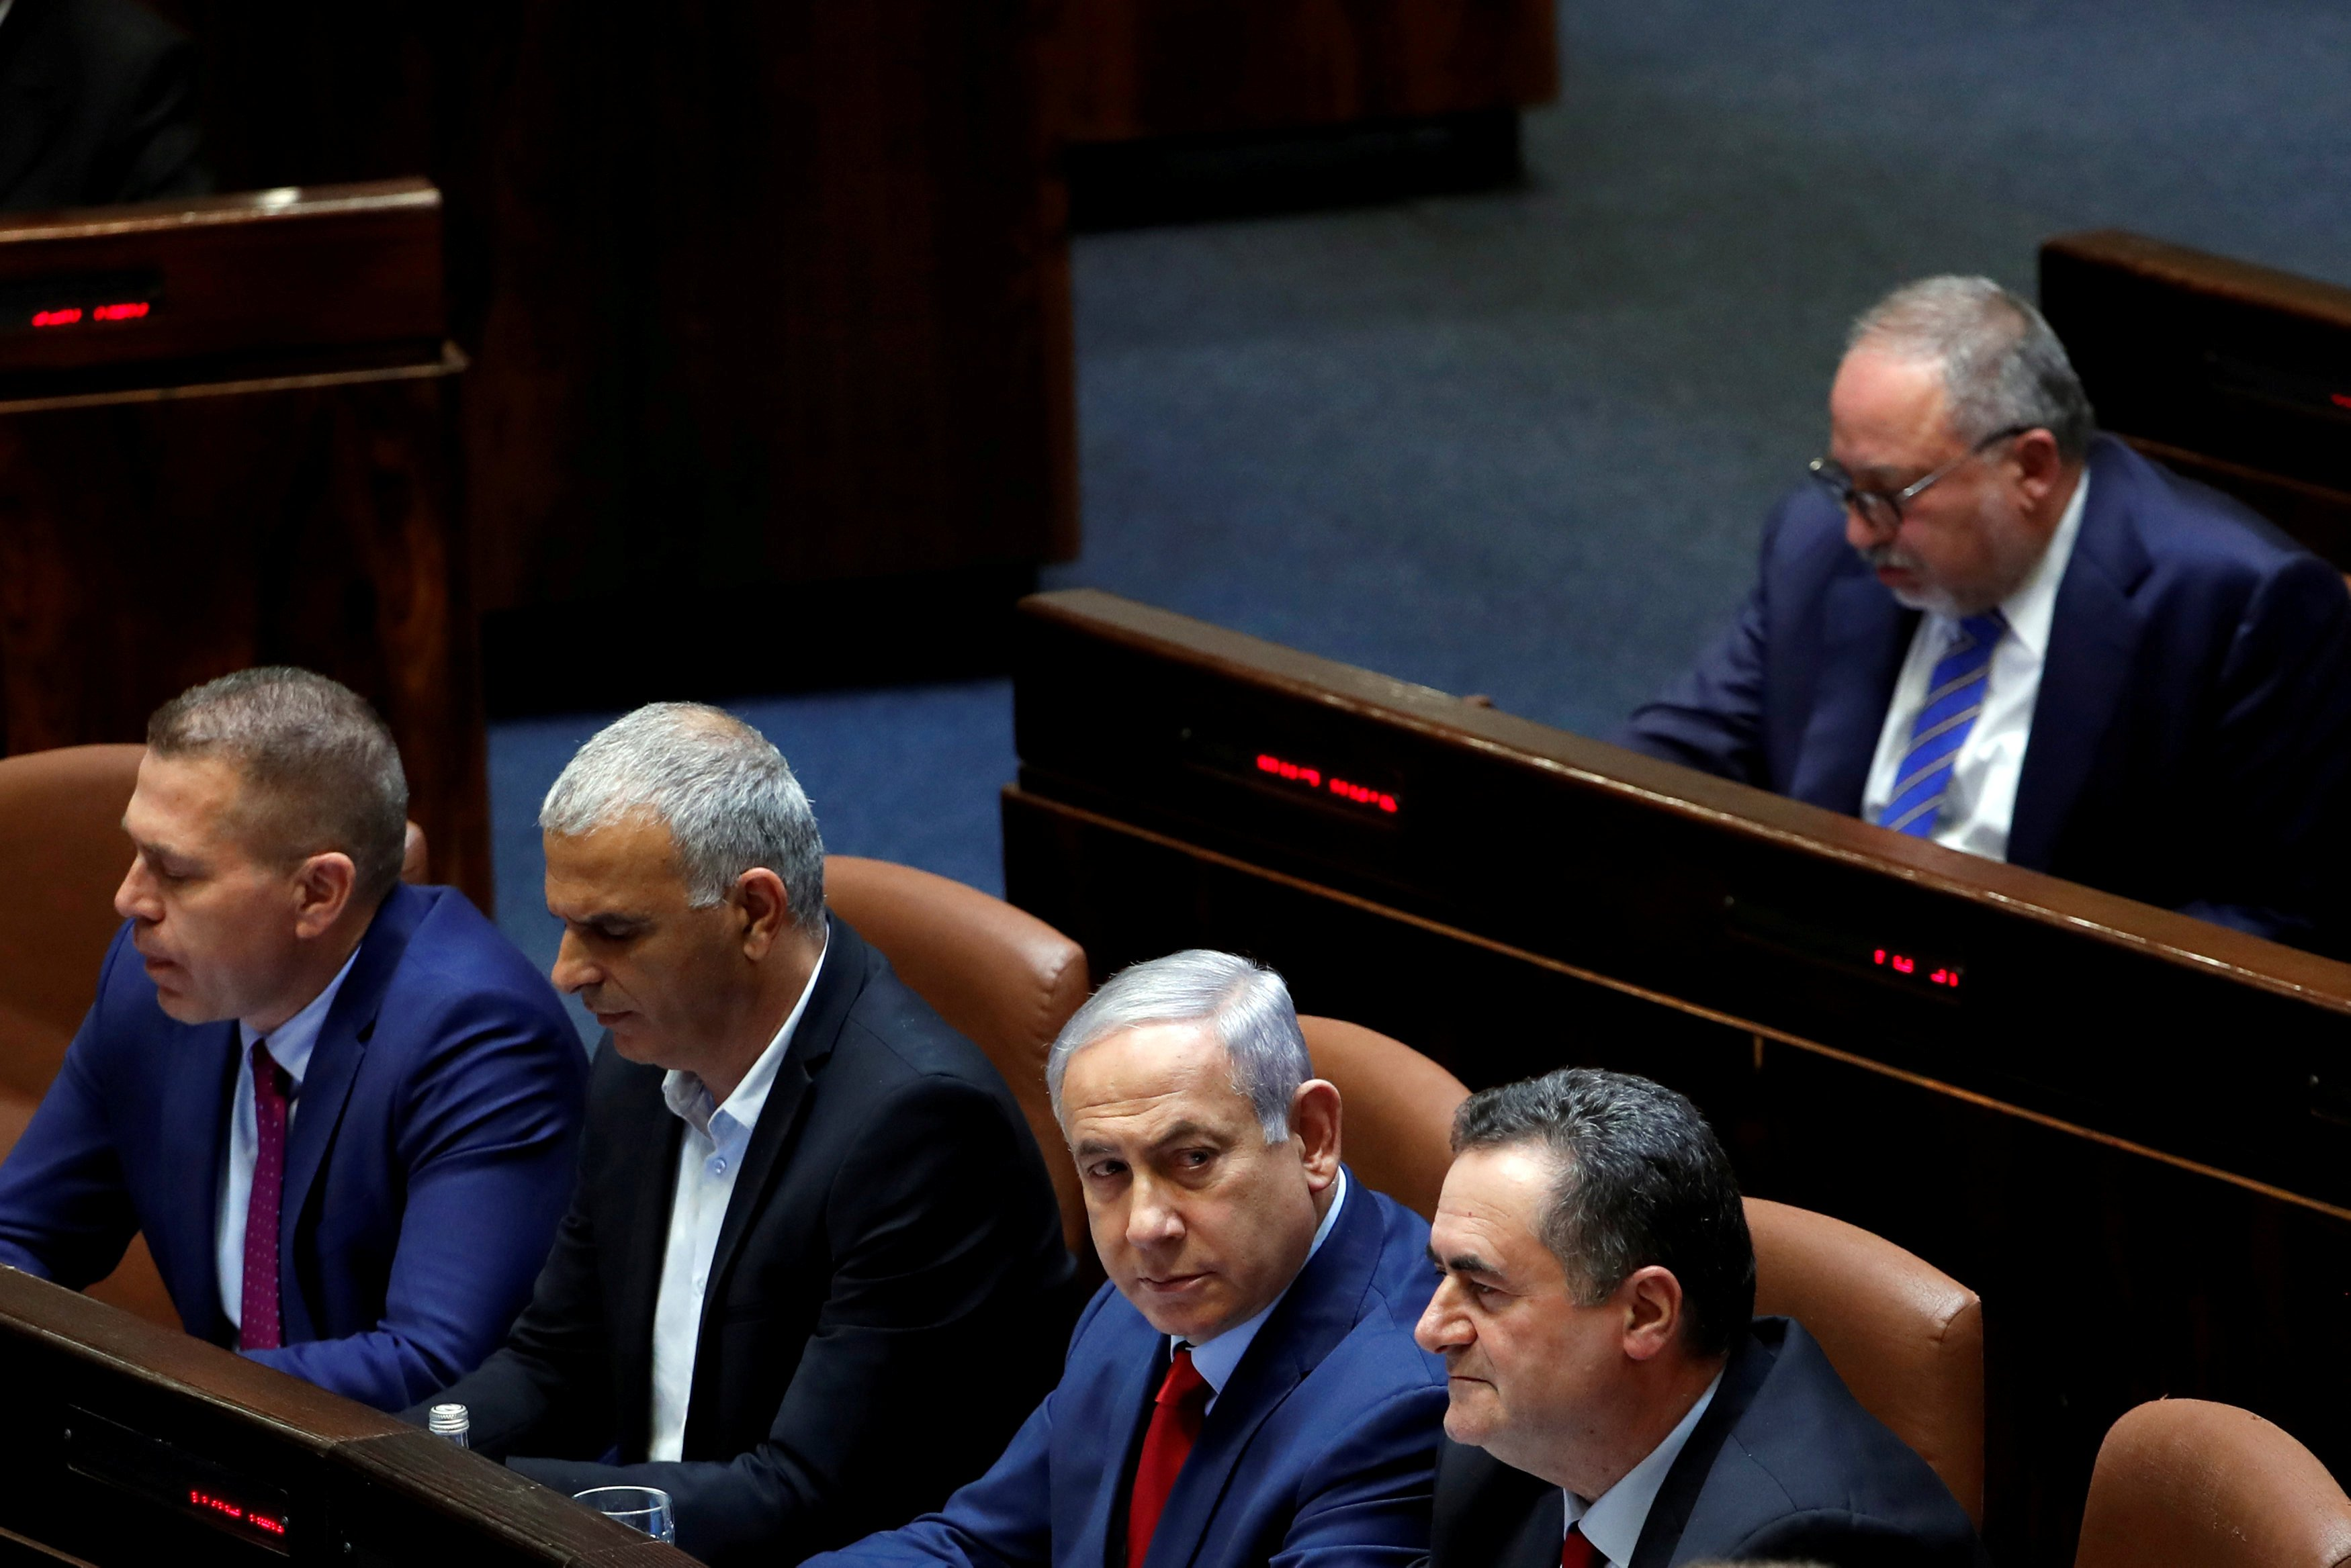 Israeli Prime Minister Benjamin Netanyahu sits with his ministers and Israel's former defence minister Avigdor Lieberman at the plenum at the Knesset, Israel's parliament (Reuters)